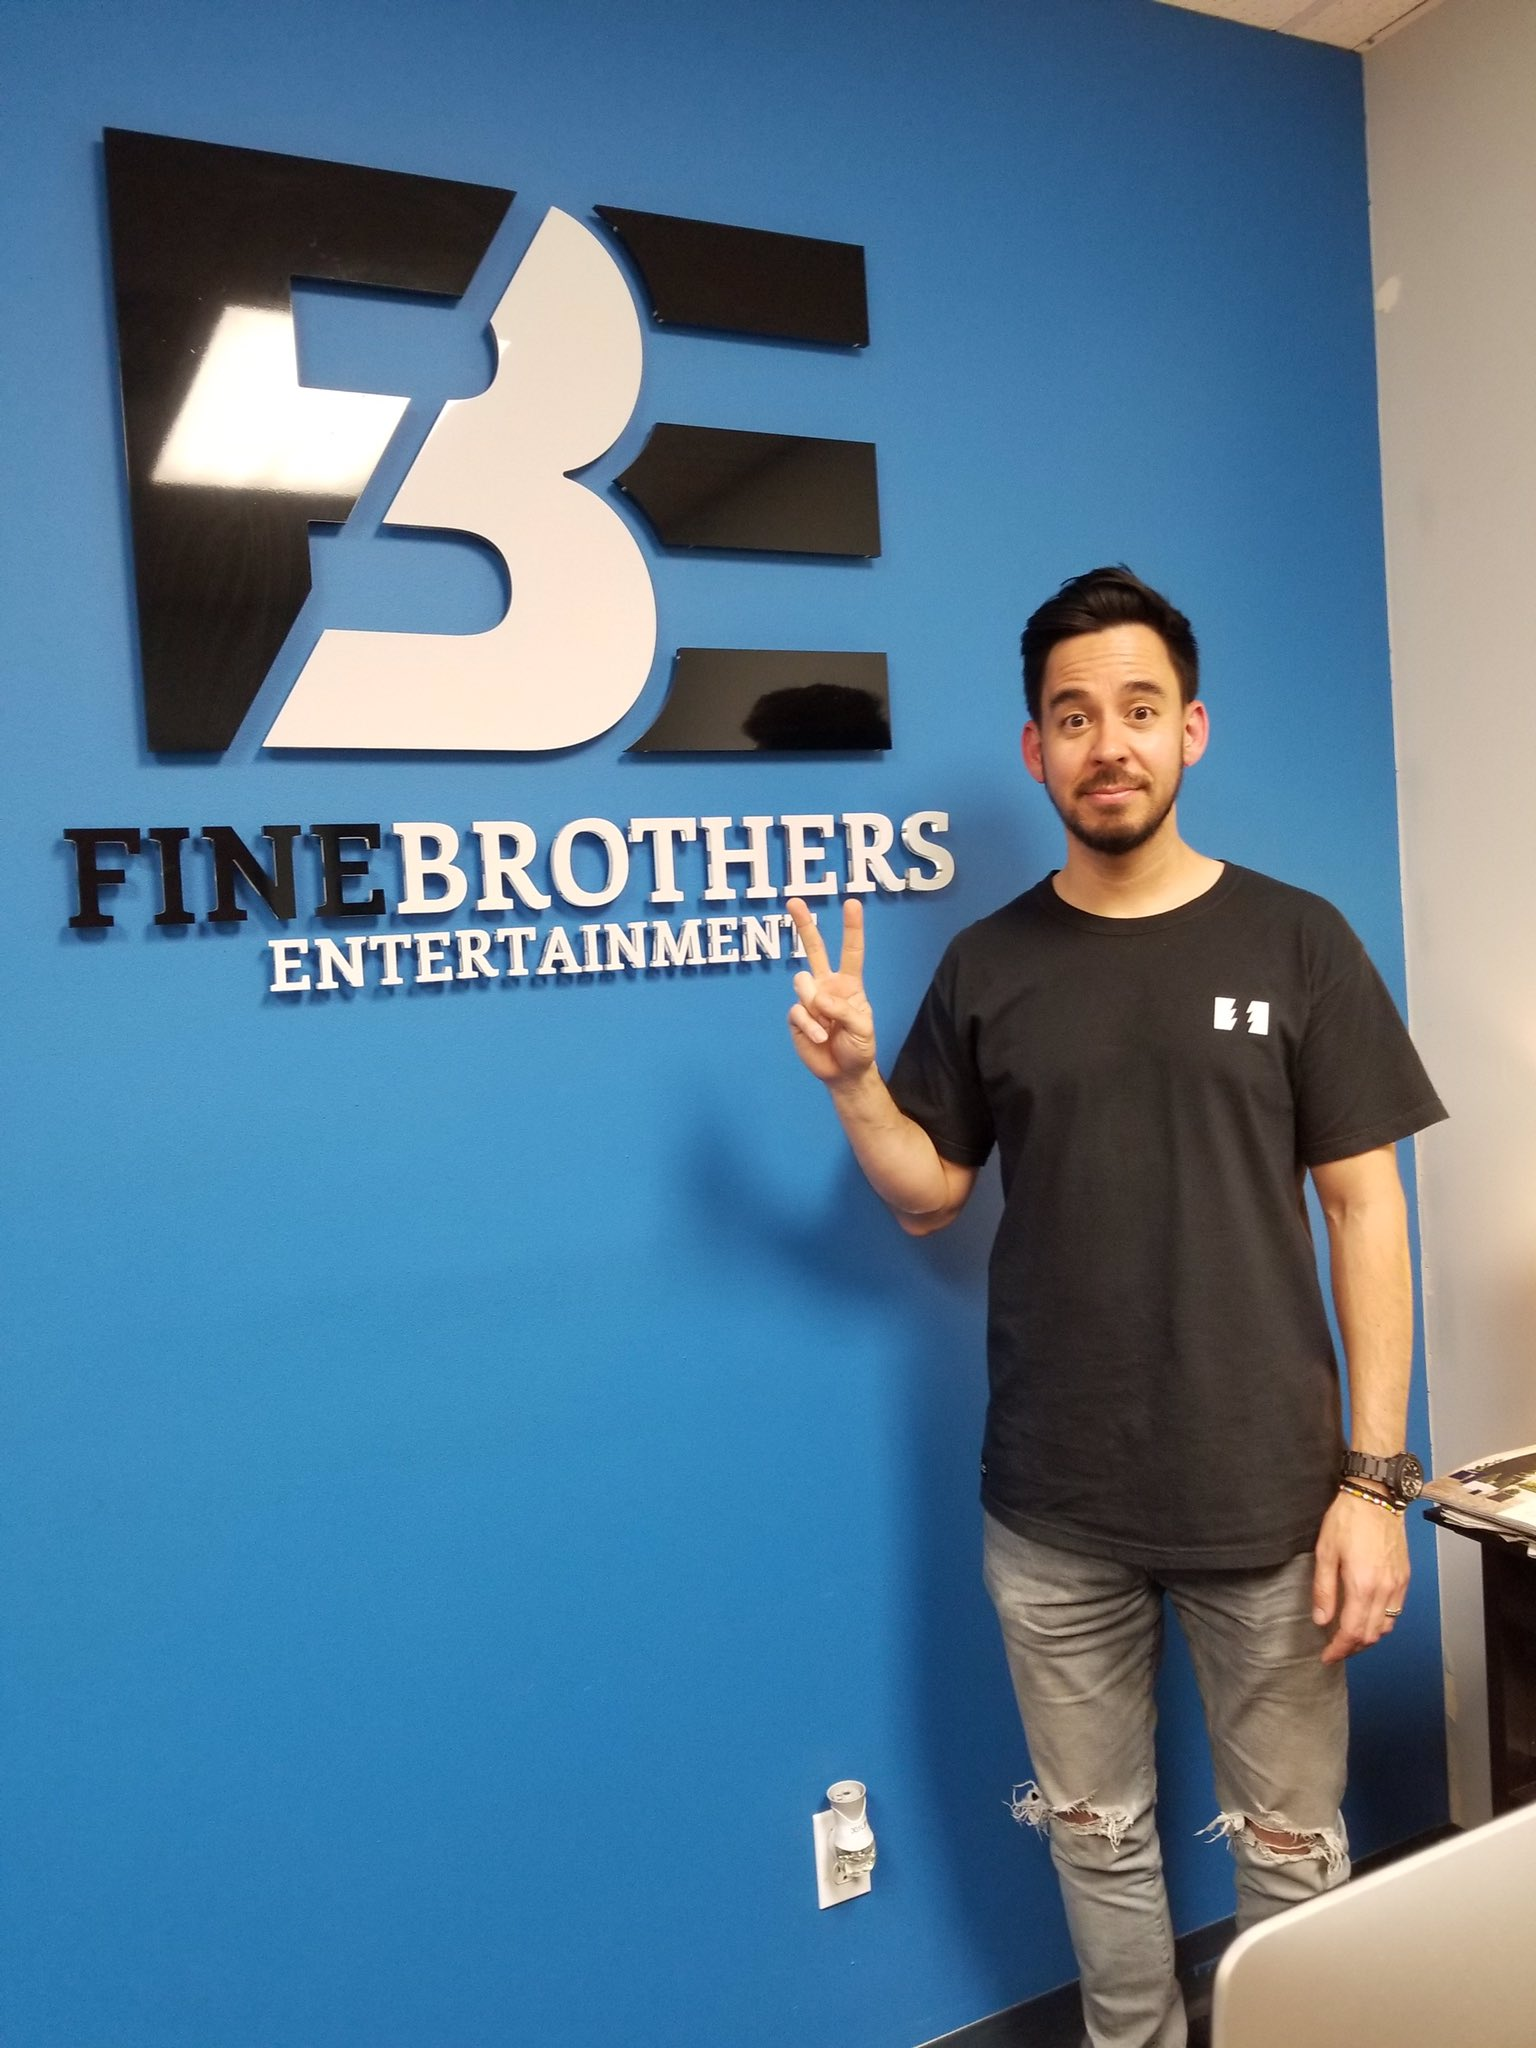 Mike stopped by @thefinebros studios today... stay tuned for a fun surprise project. https://t.co/lRNWjQ4DjD